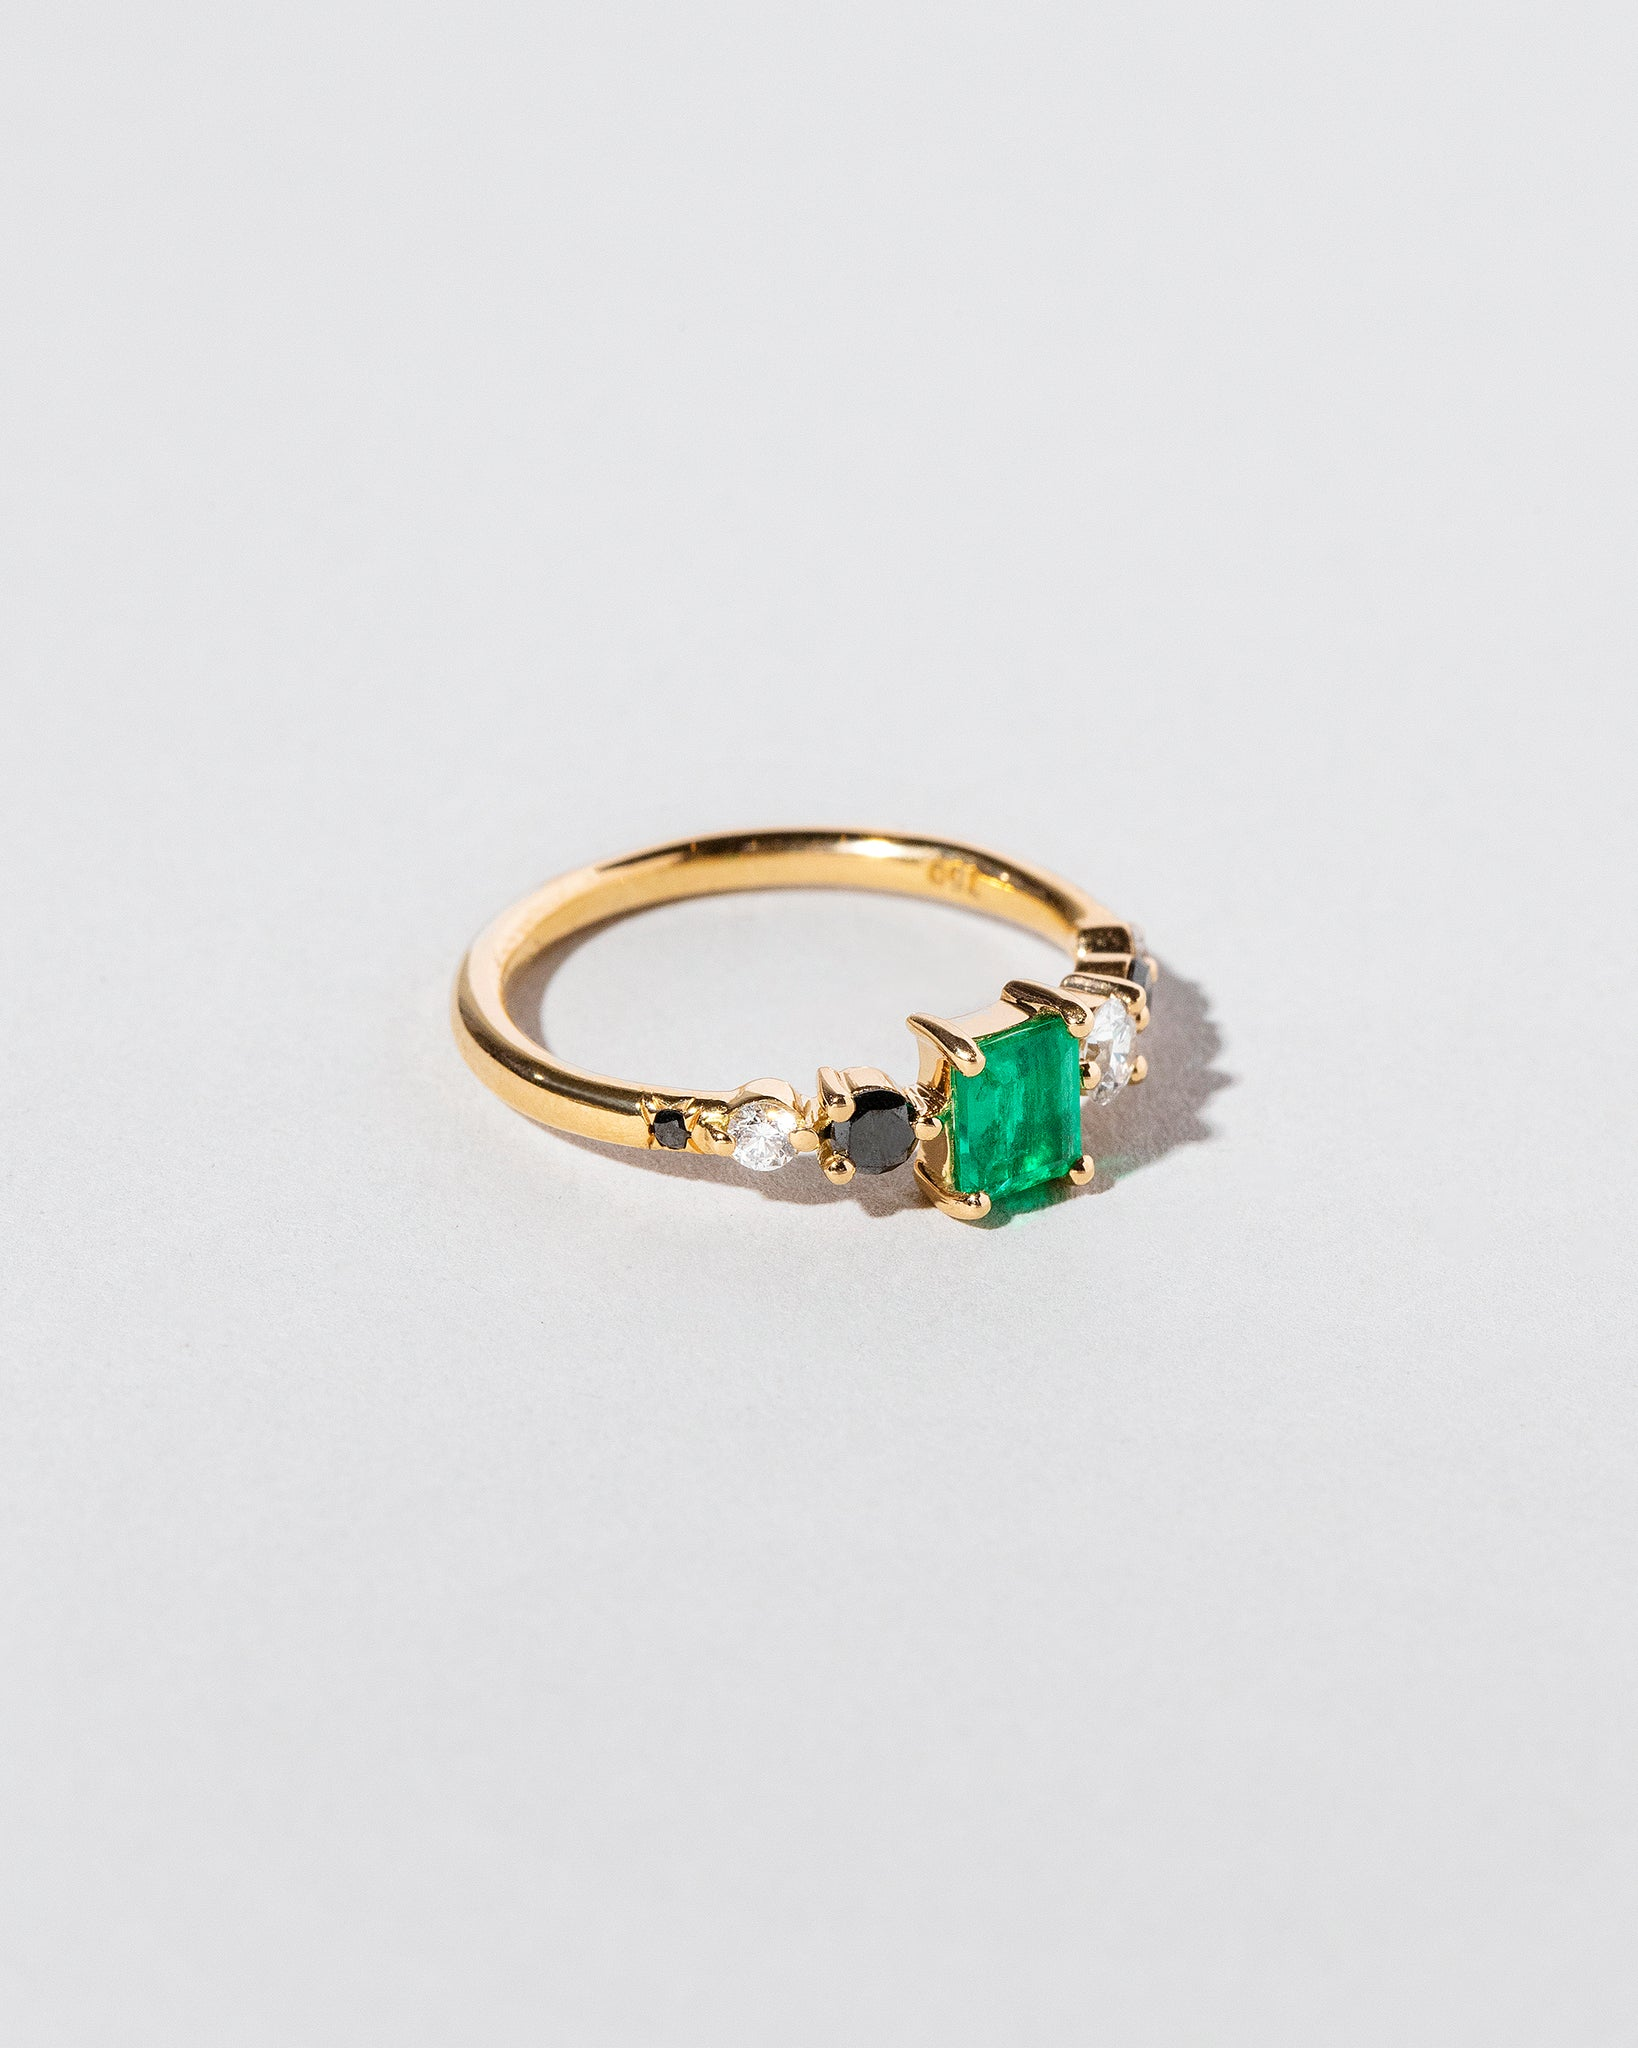 Left view of Emerald Seven Sisters Ring